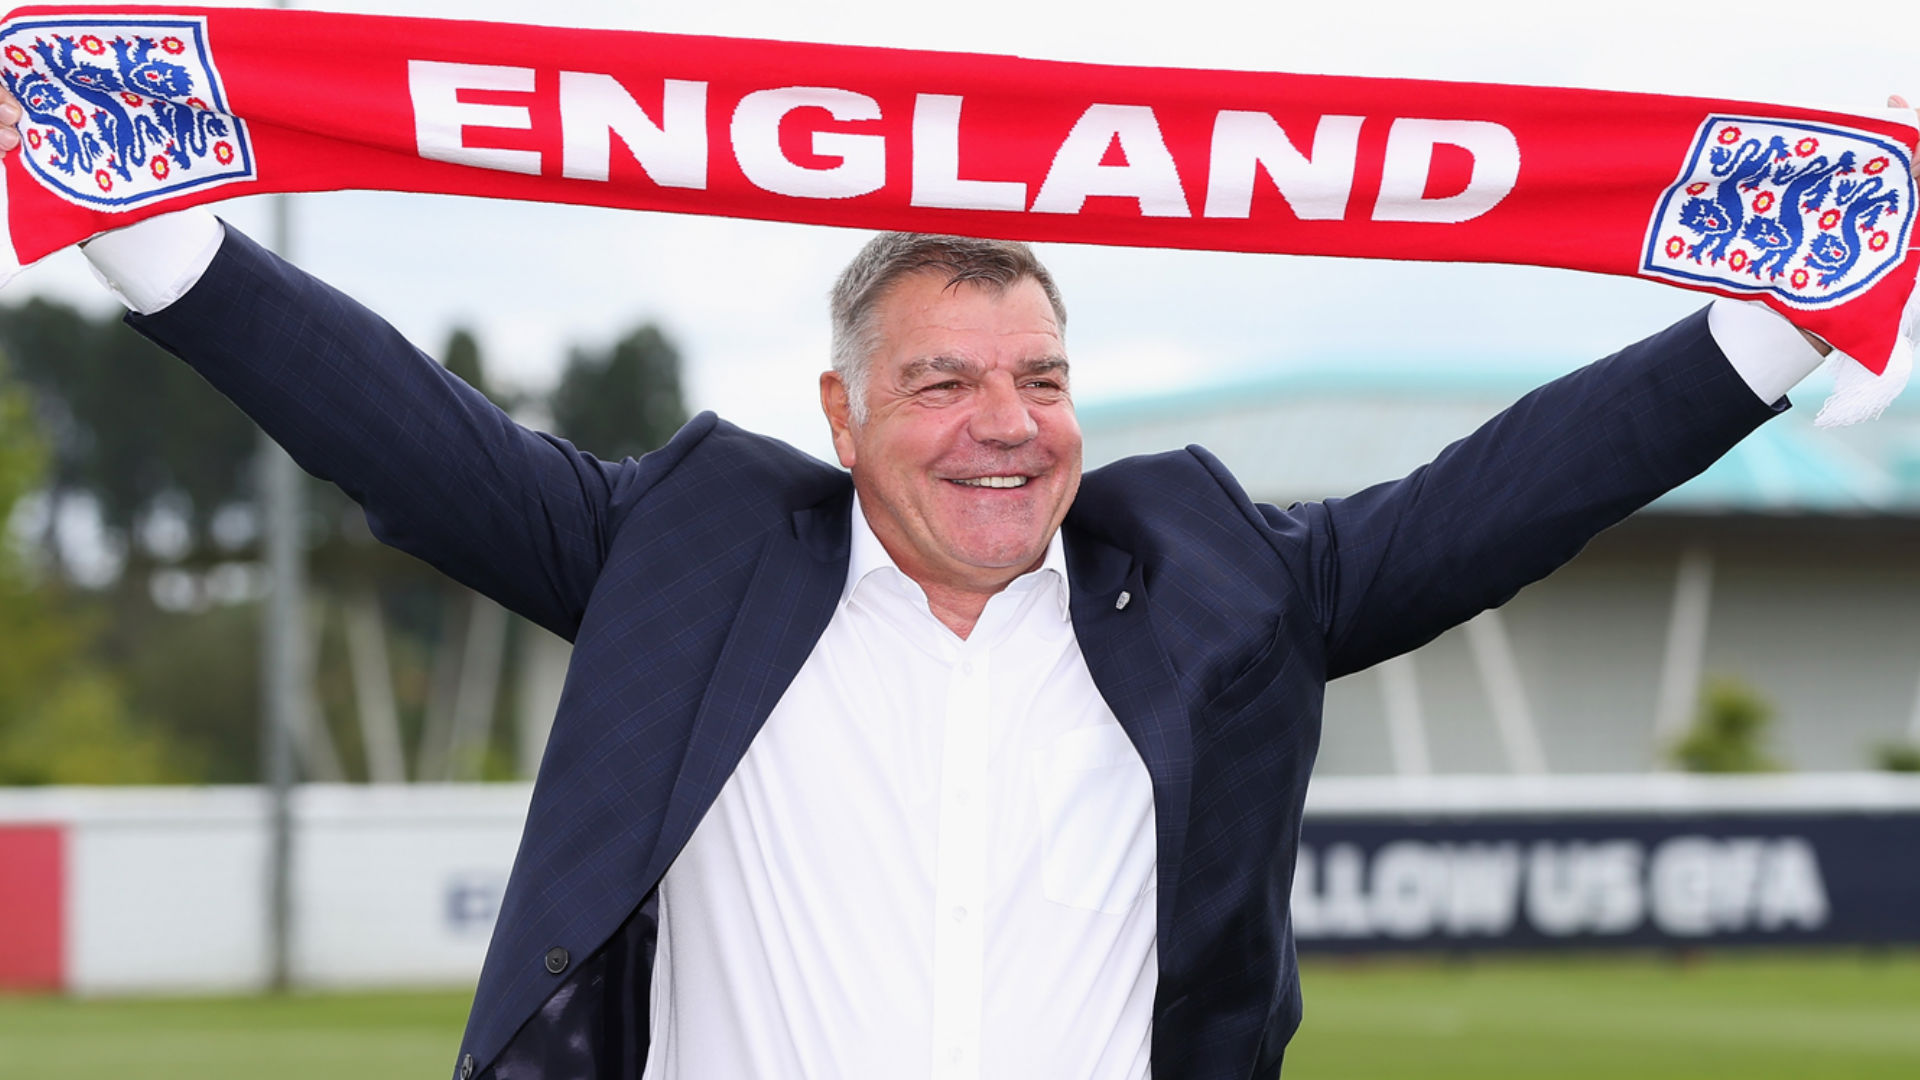 Big Sam Allardyce with England scarf